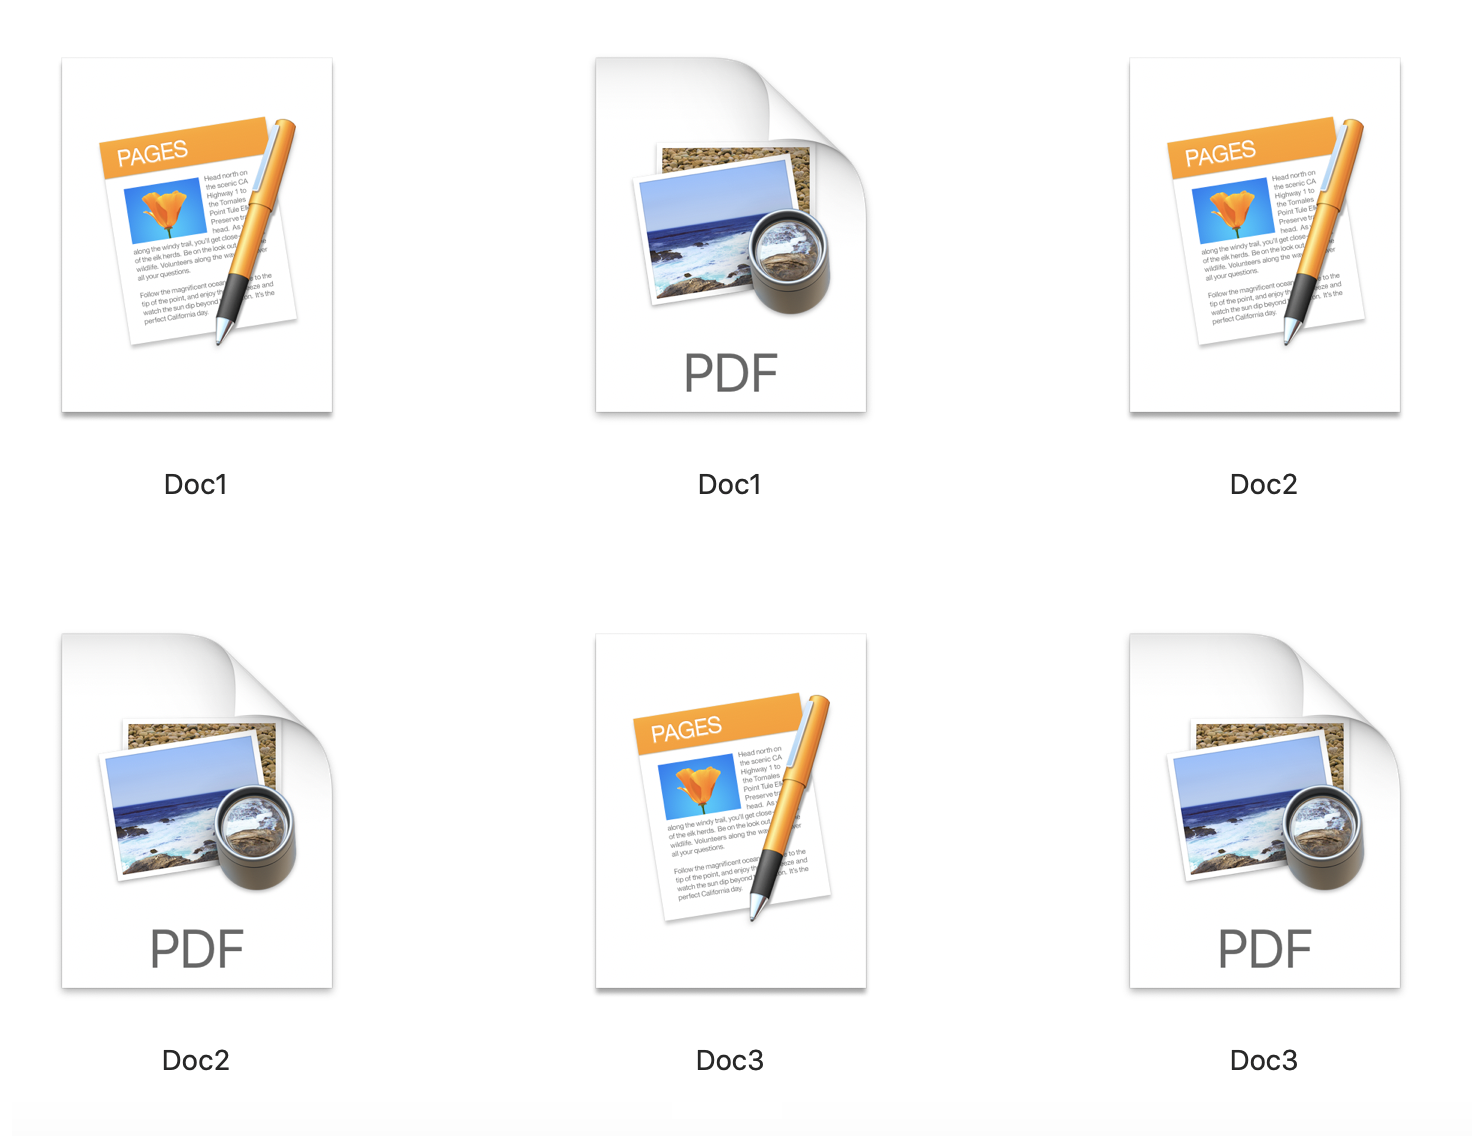 How to convert a PAGES document to PDF on Mac or Windows?